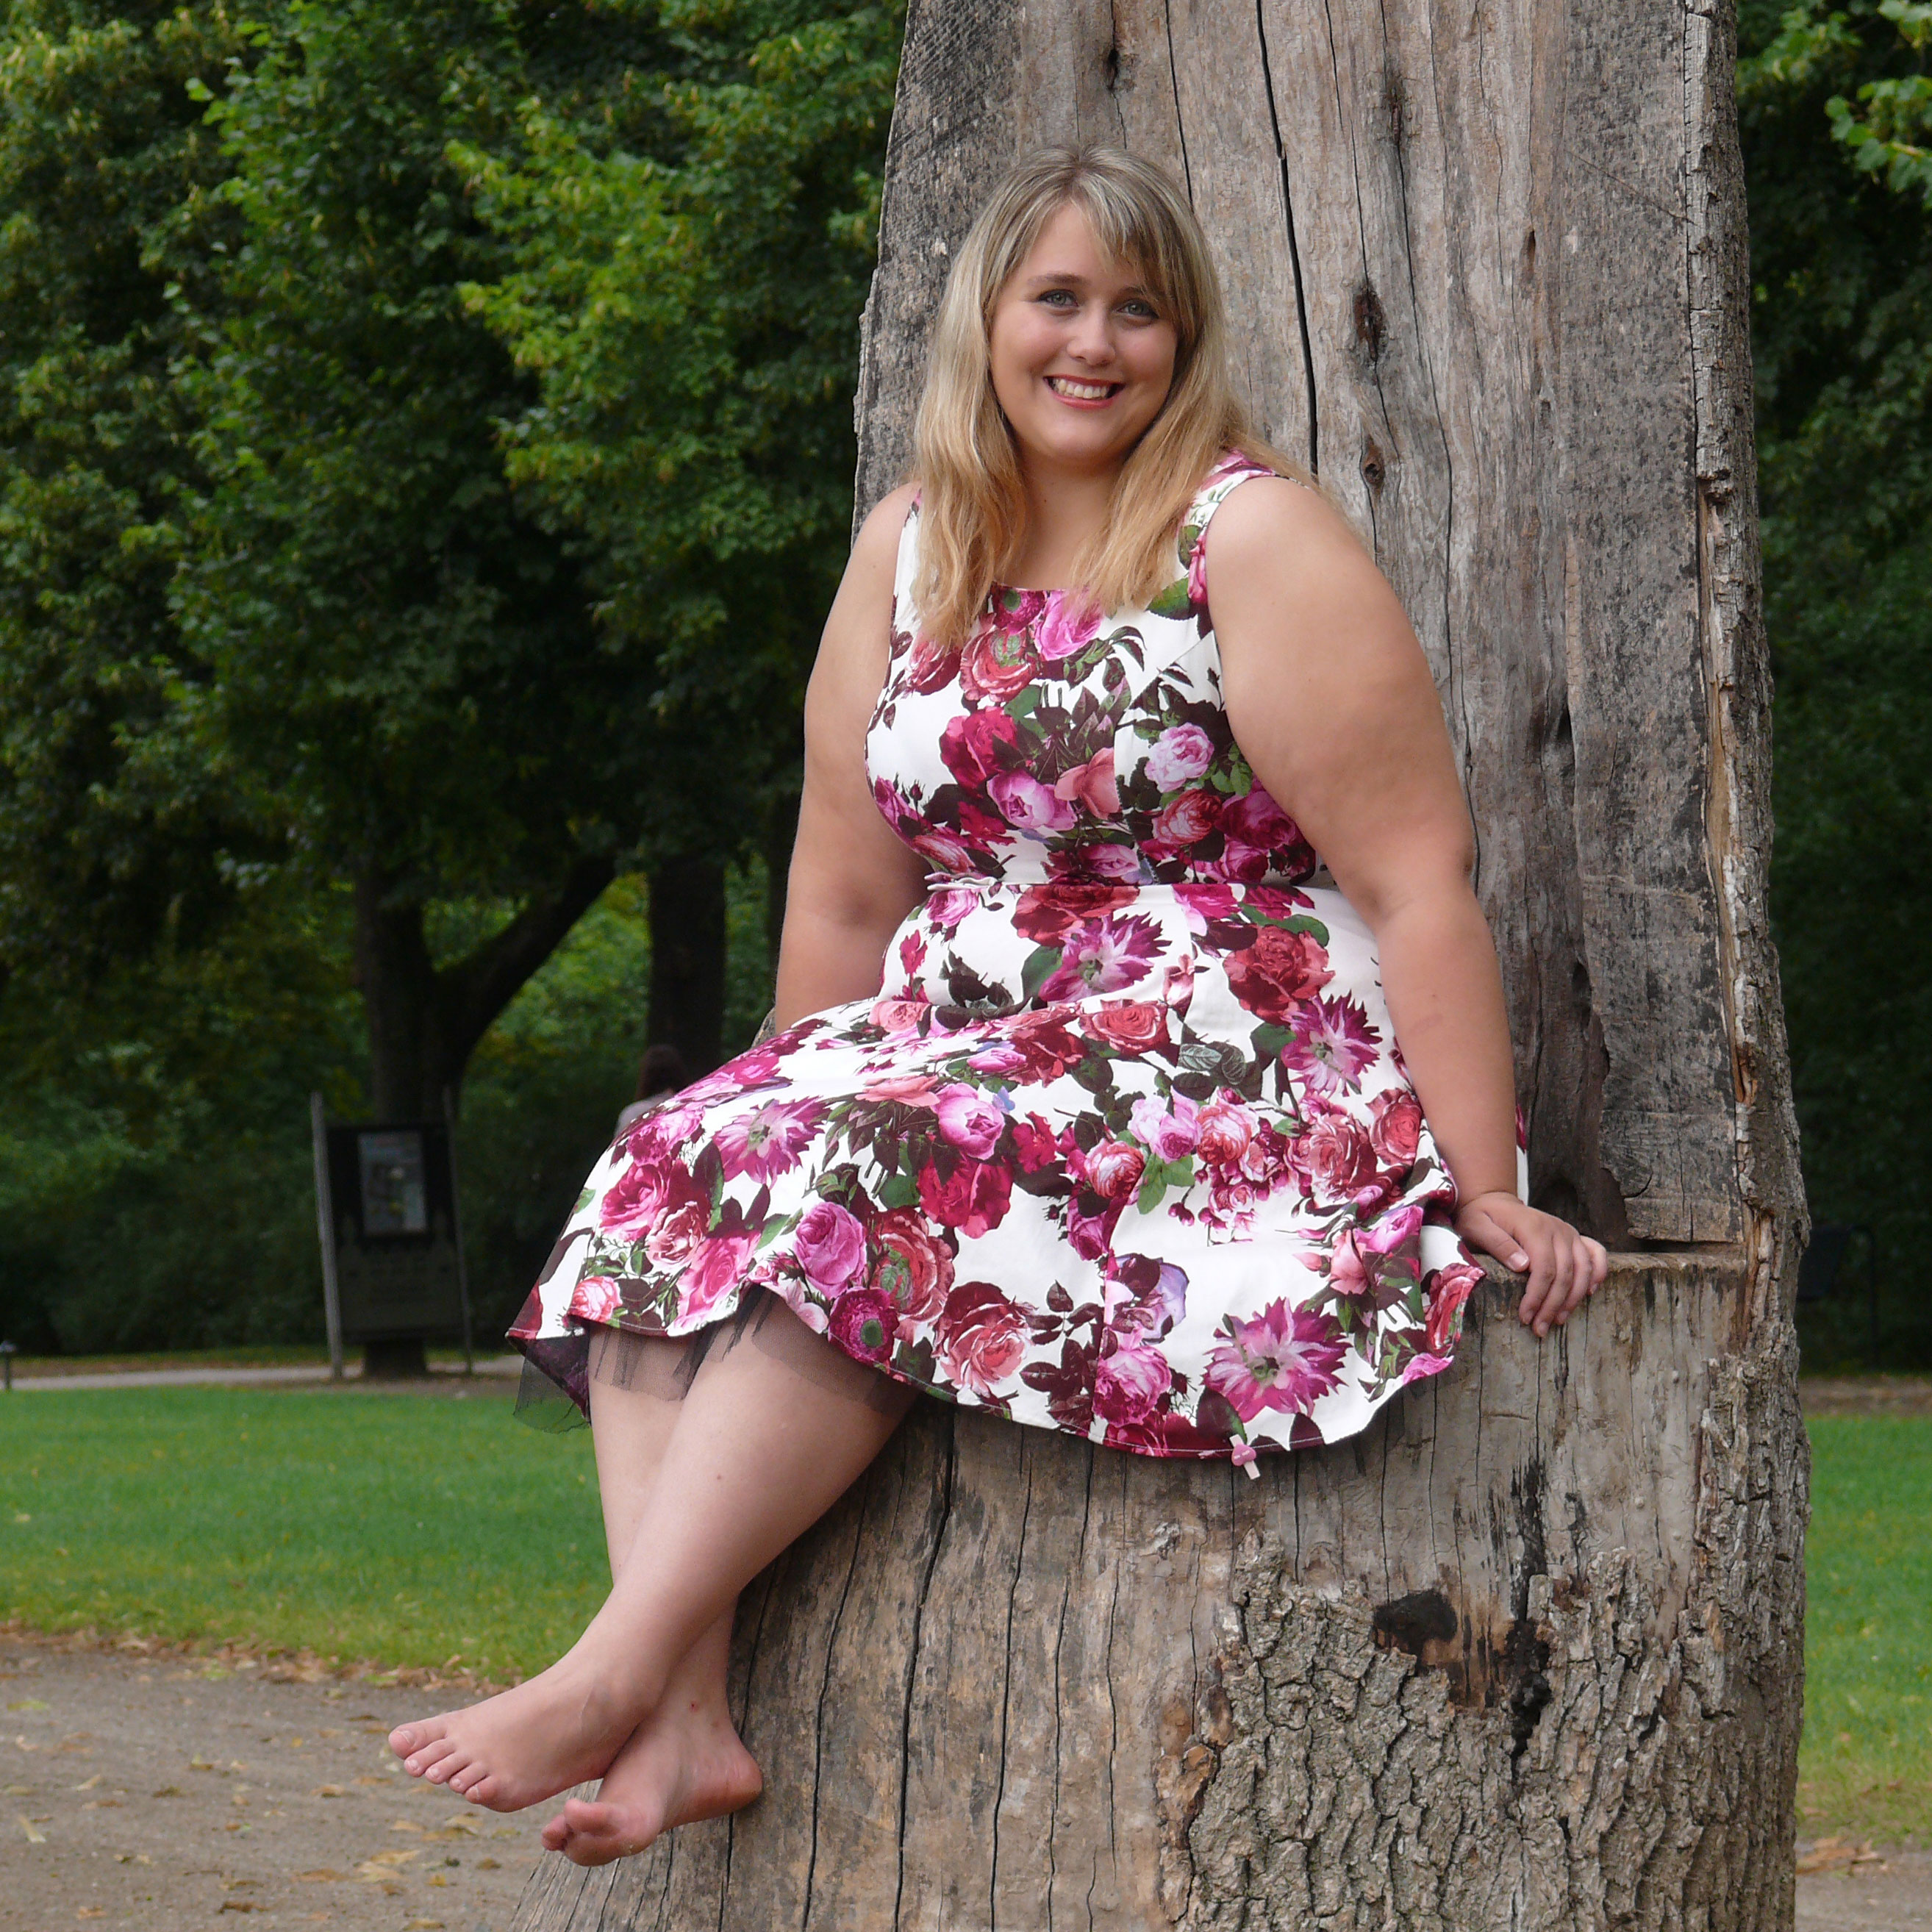 Woman-Sitting-On-Tree.jpg